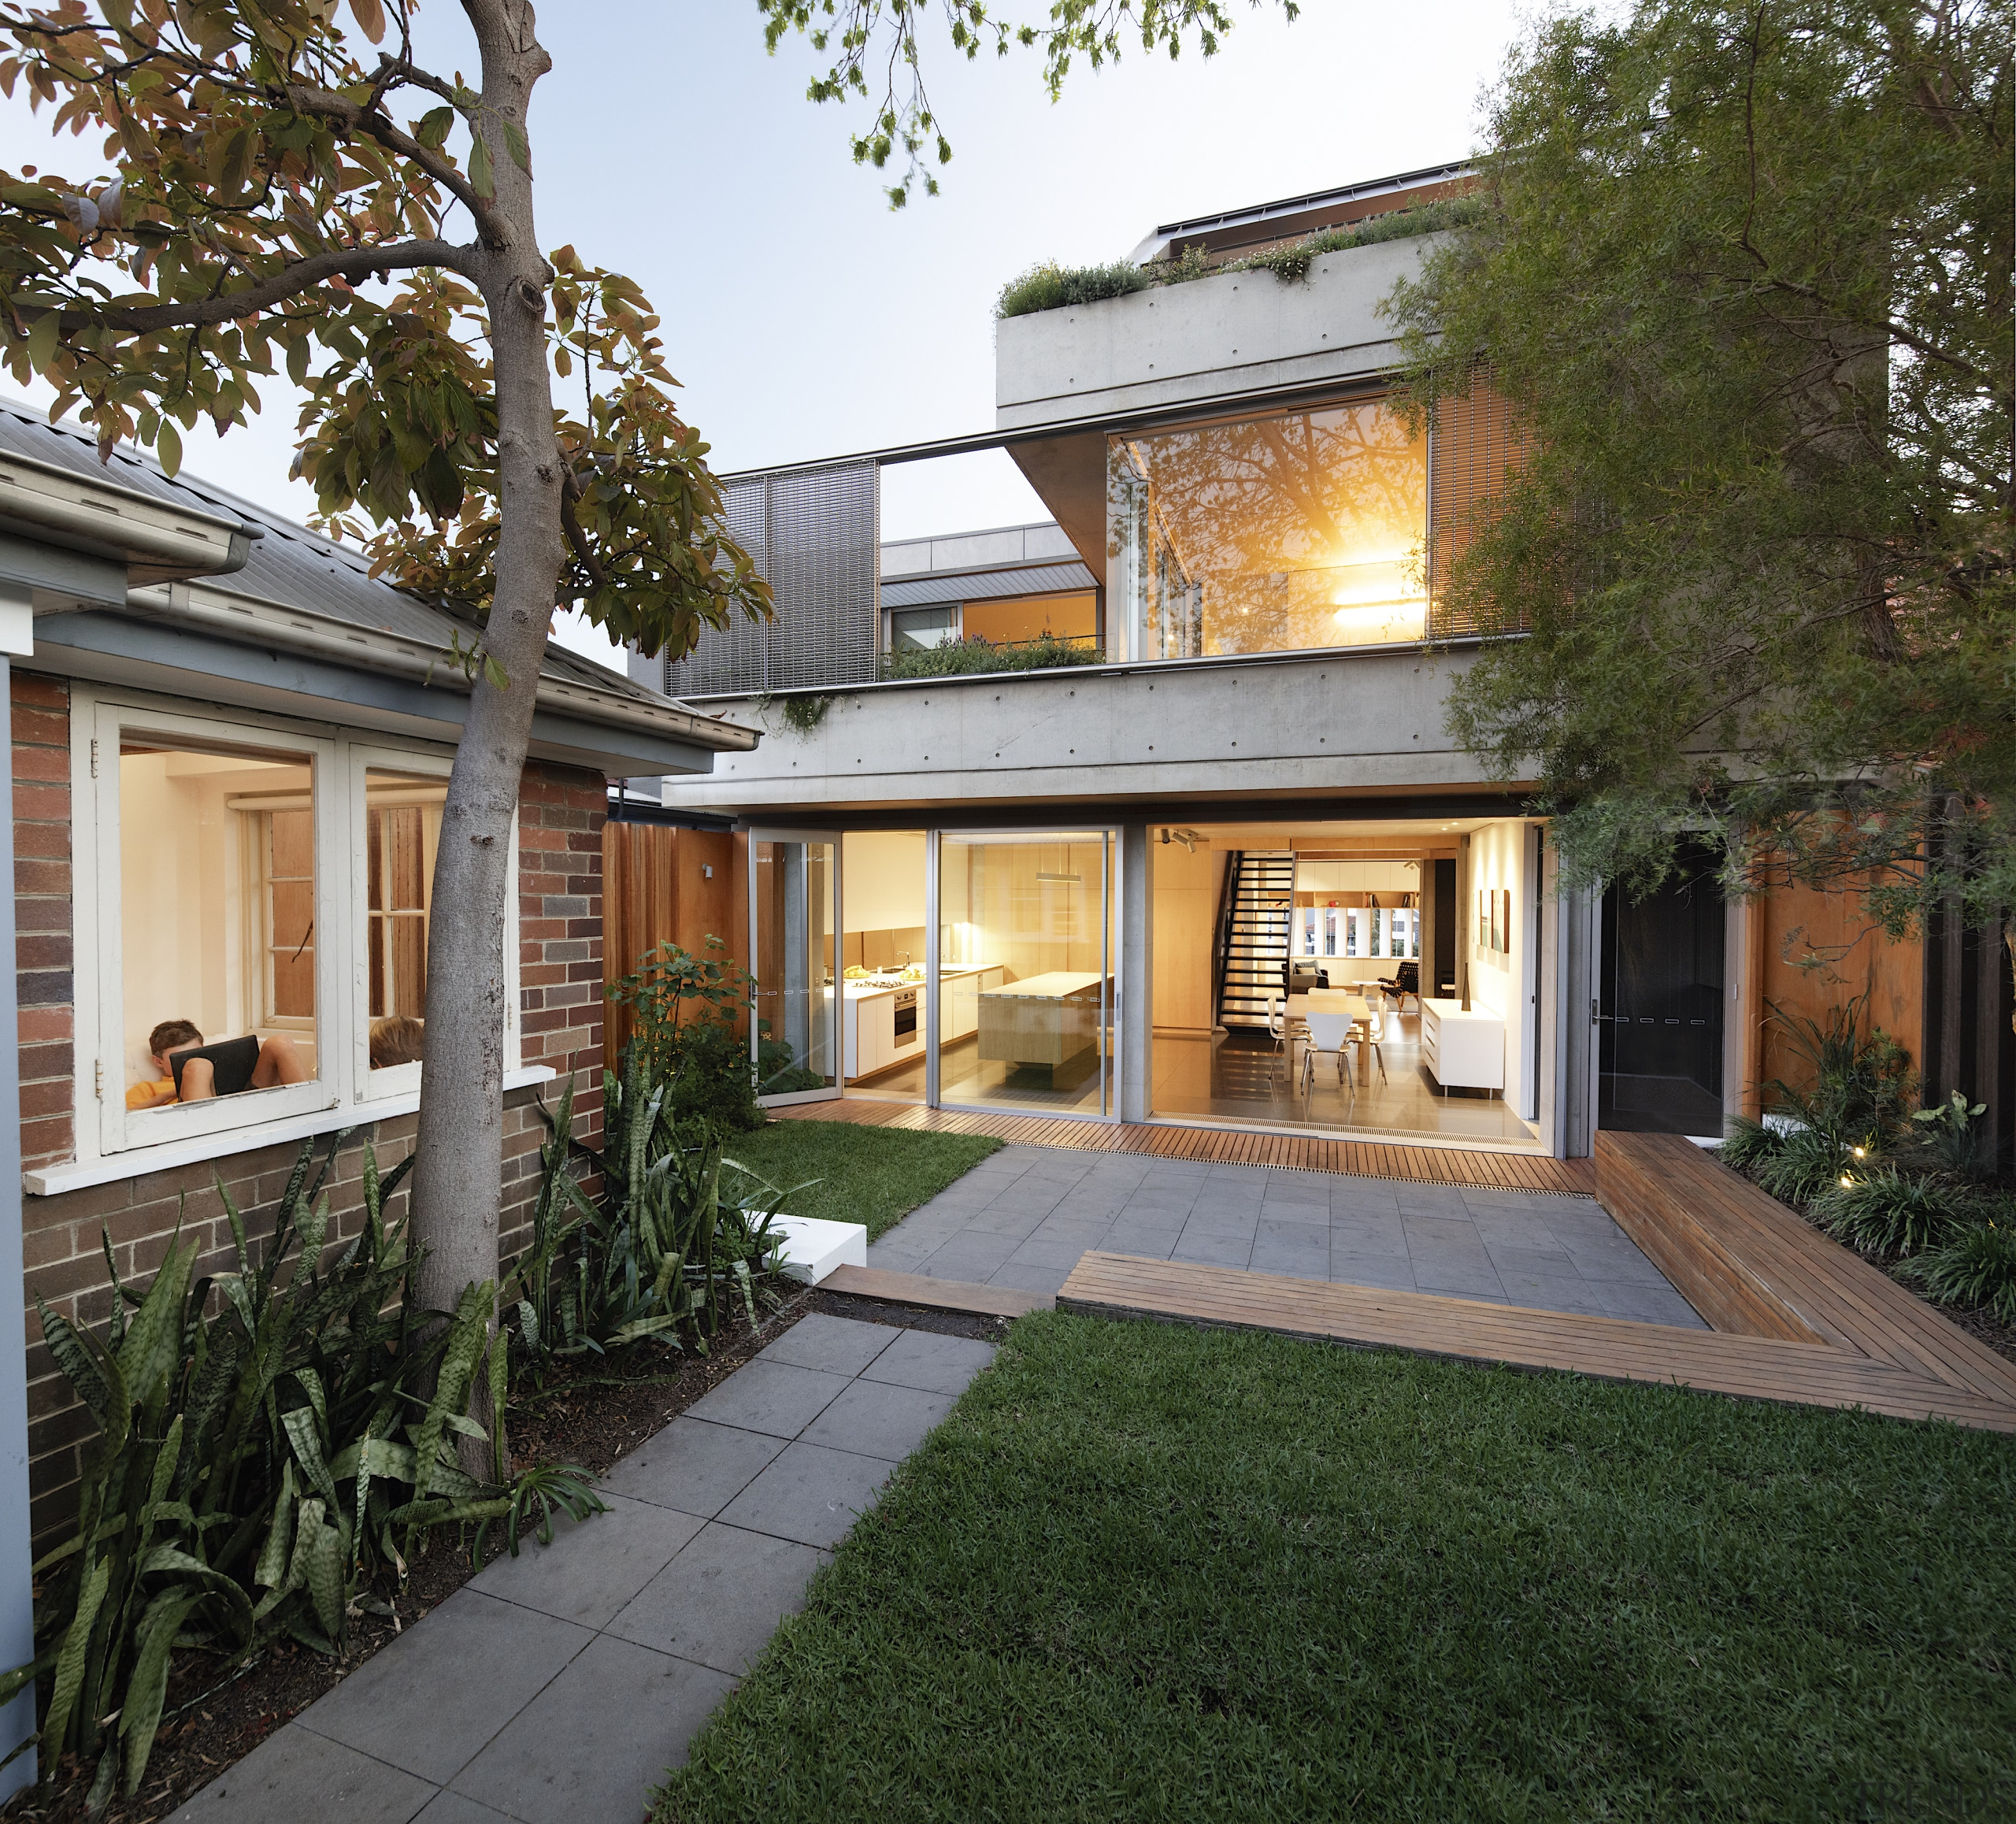 Lilyfield House is efficient and sustainable in its